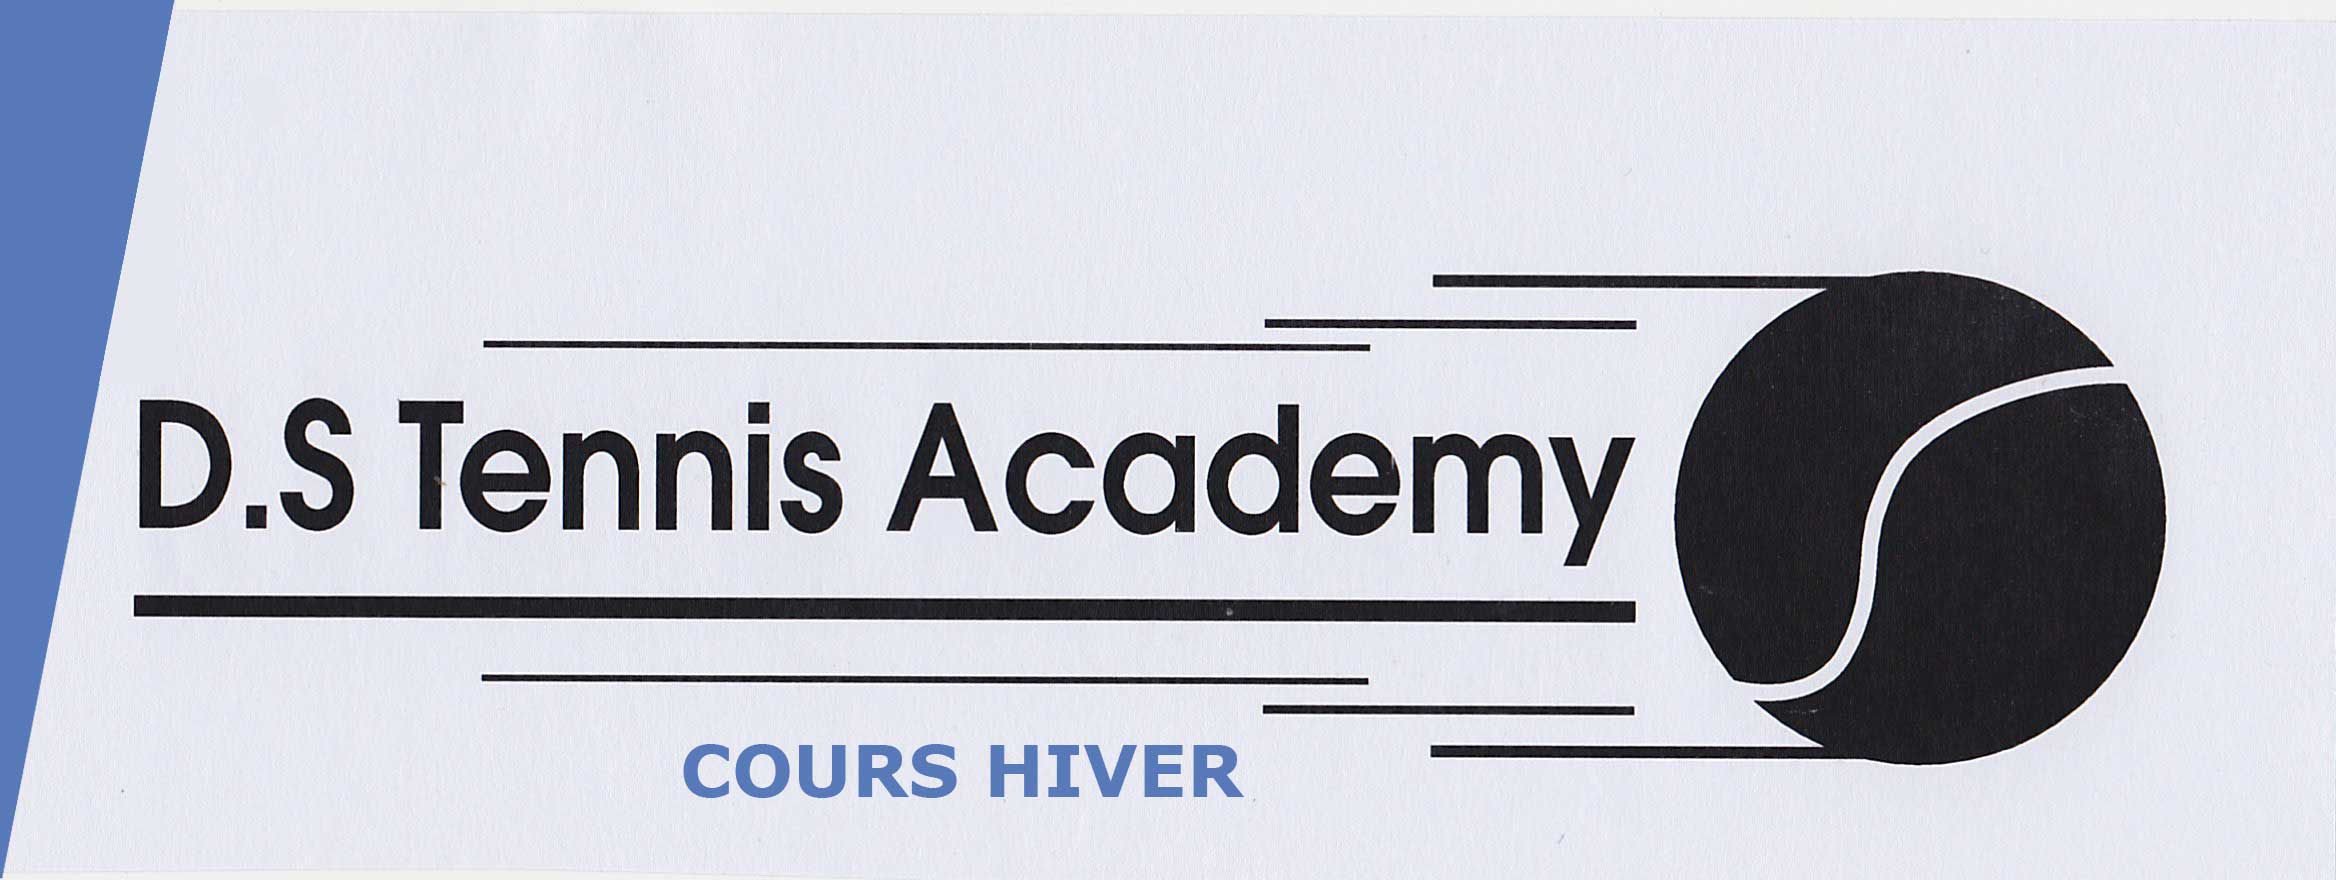 Horaires Cours Hiver 2019-20